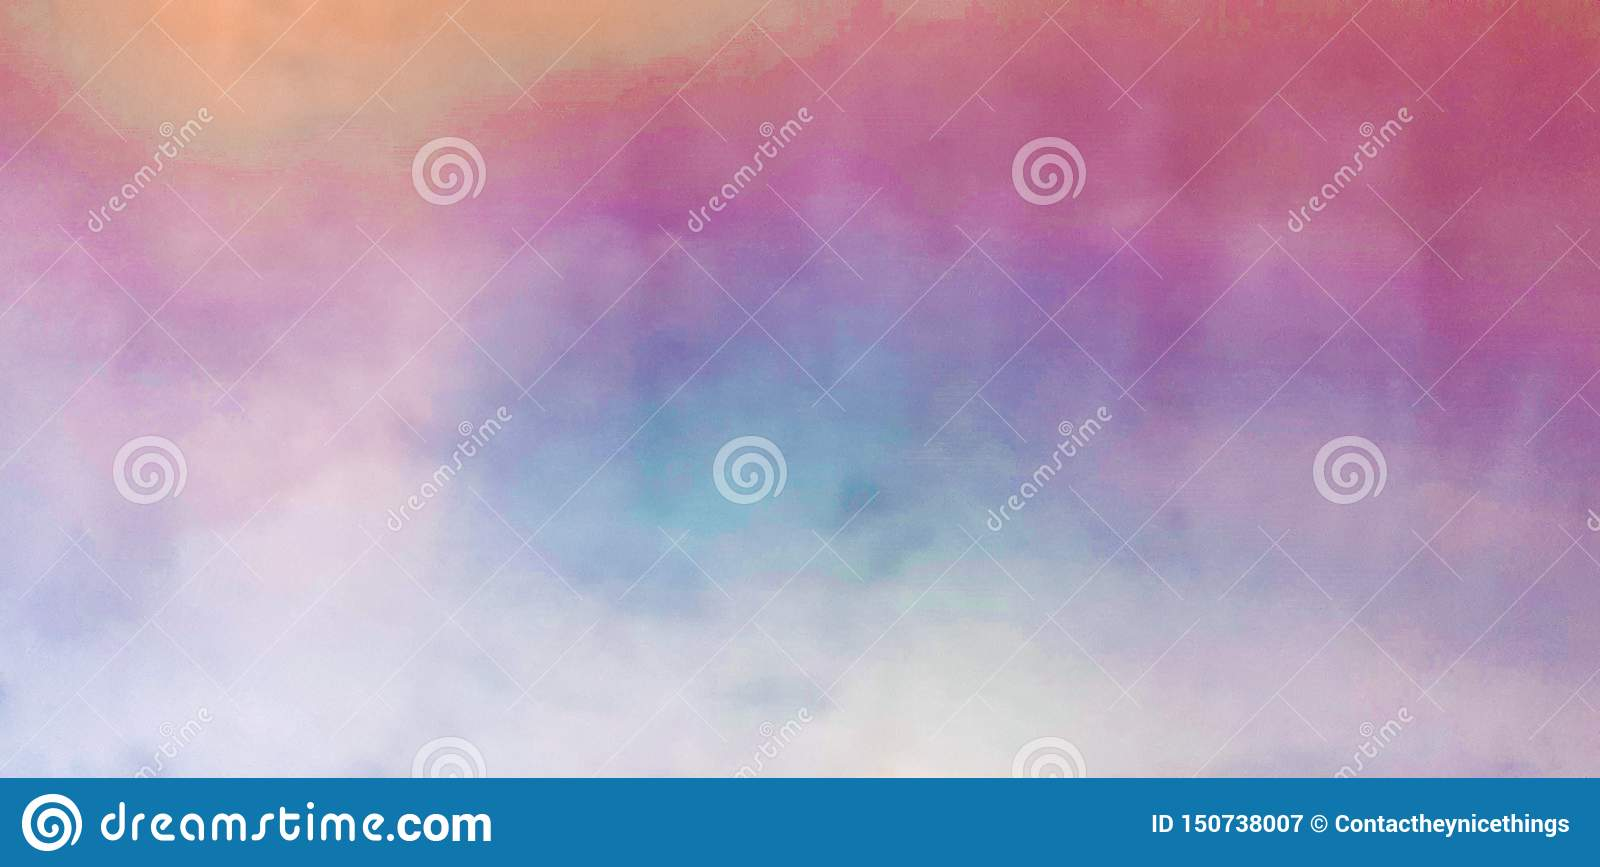 Colorful watercolor blurry colors background